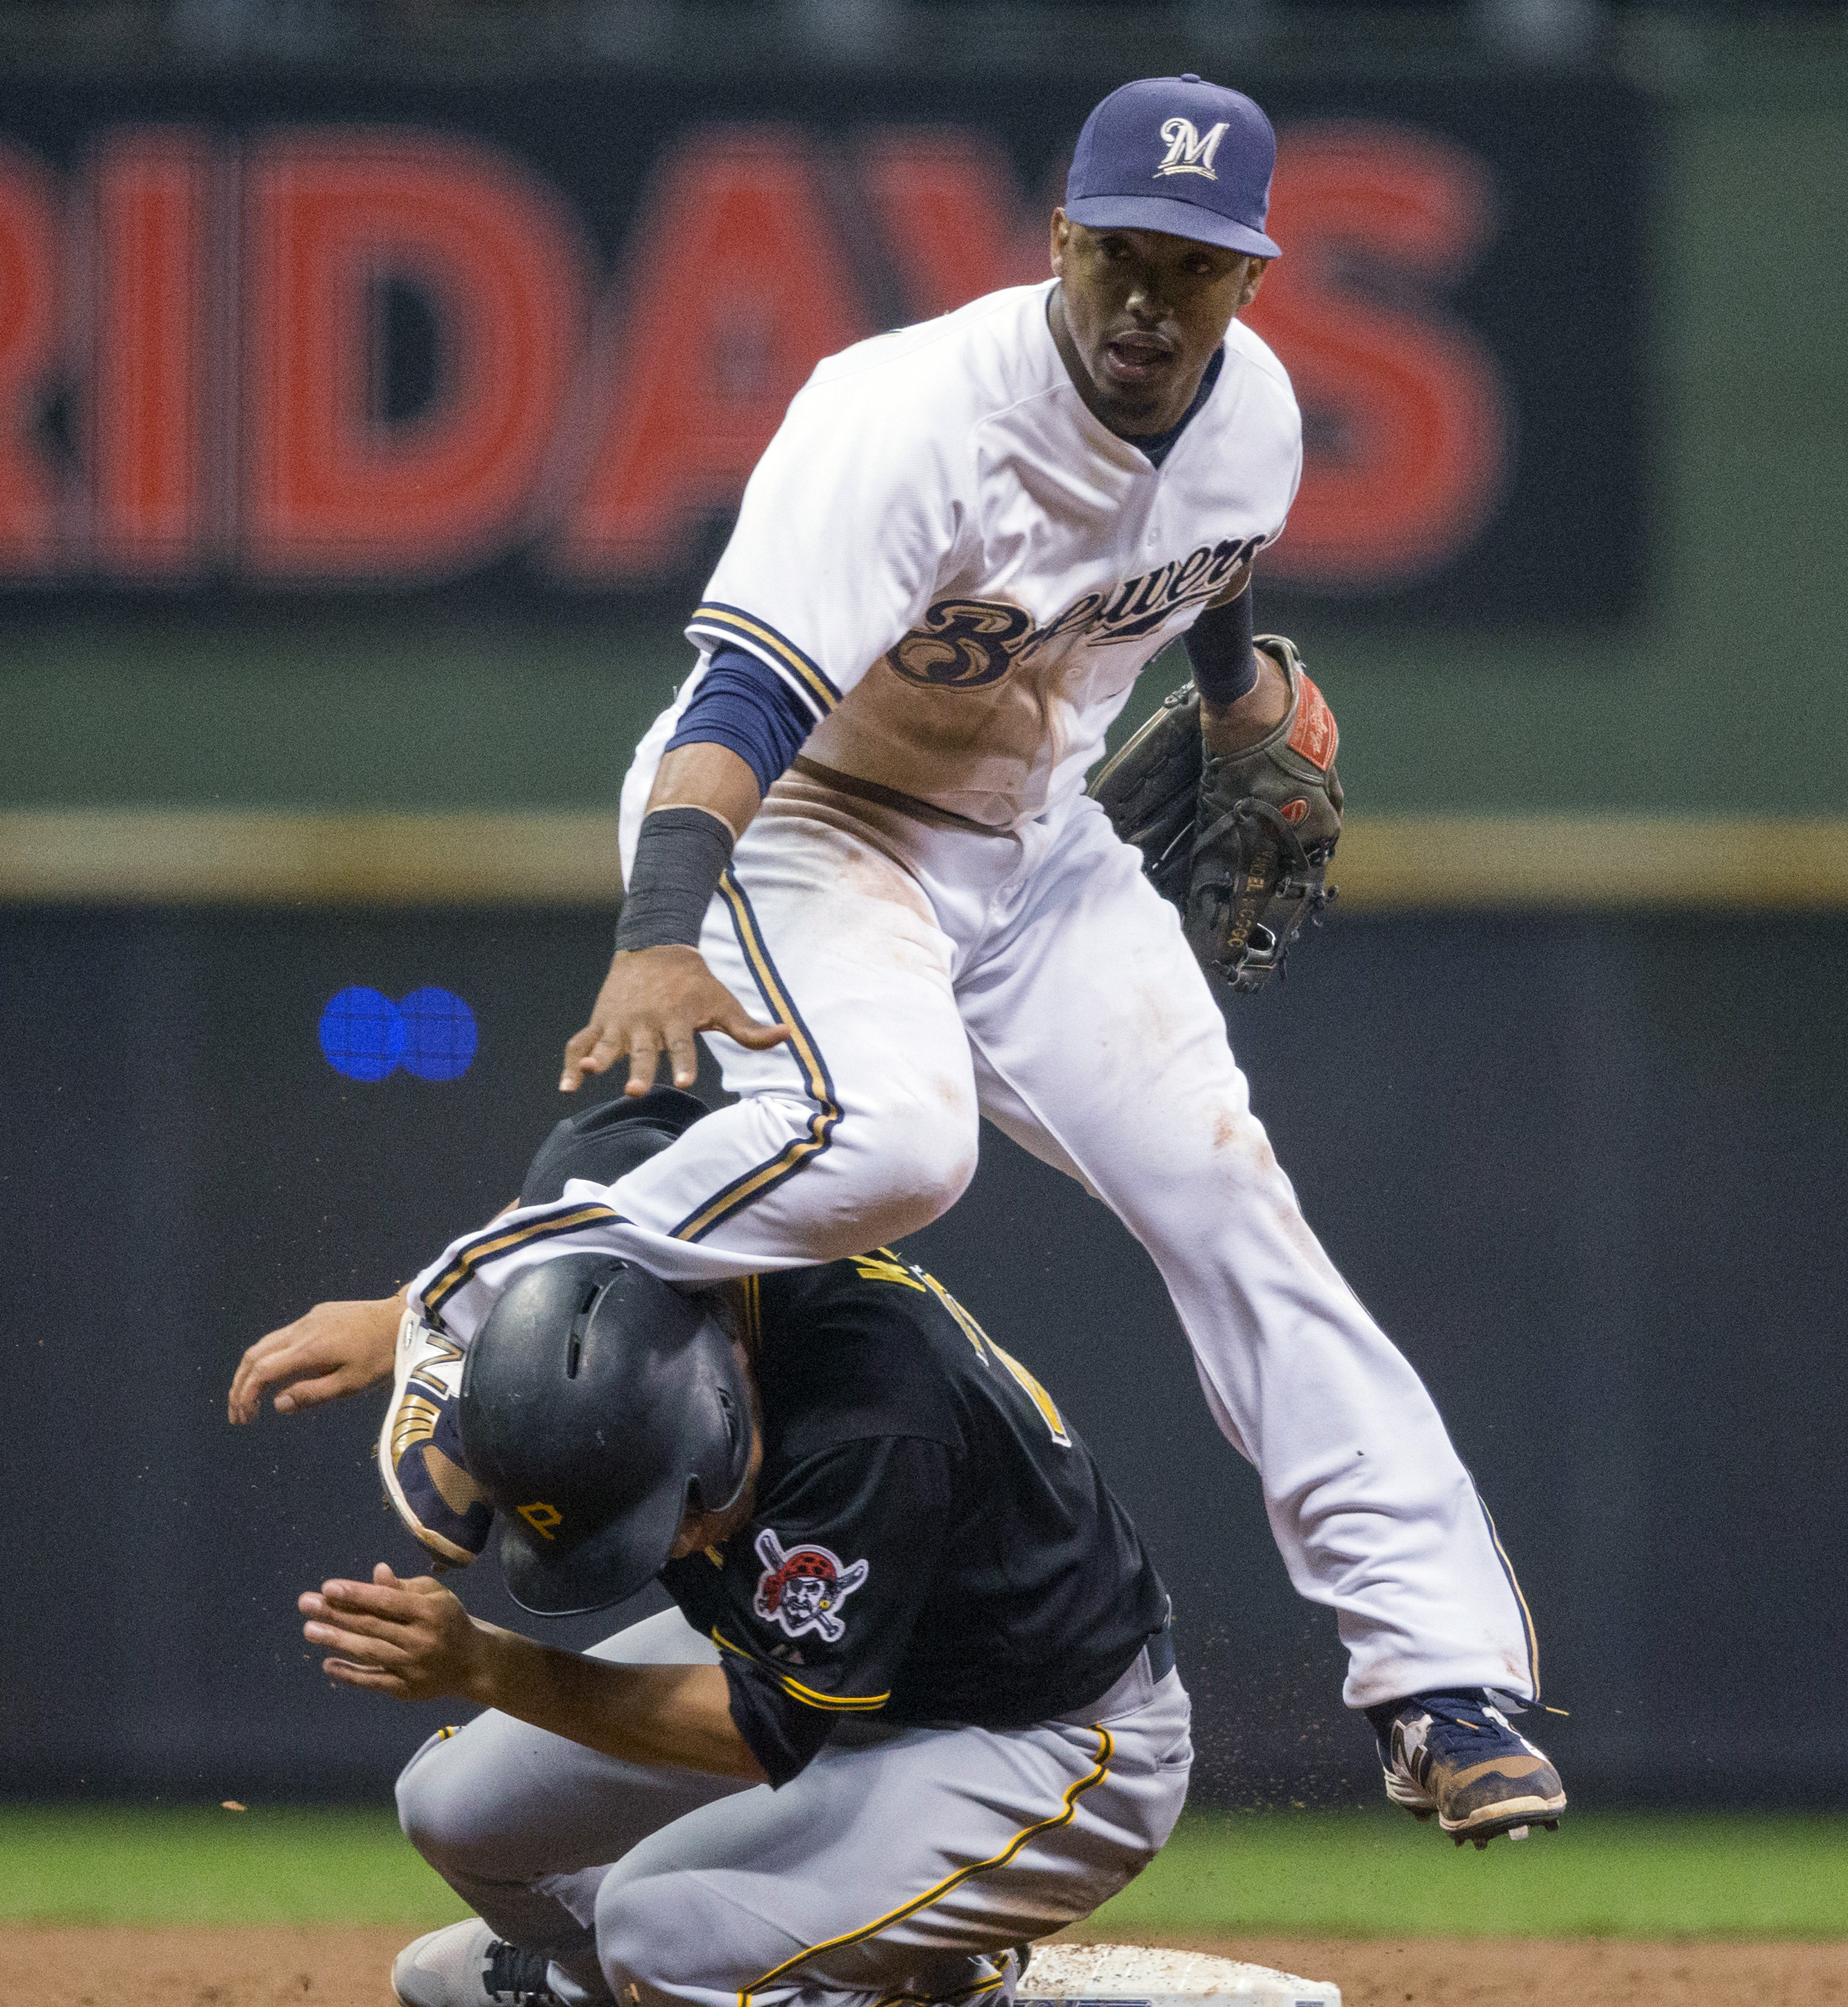 Milwaukee Brewers' Jean Segura gets the force out at second base on Pittsburgh Pirates' Jung Ho Kang during the seventh inning of a baseball game, Thursday, Sept. 3, 2015, in Milwaukee. (AP Photo/Tom Lynn)